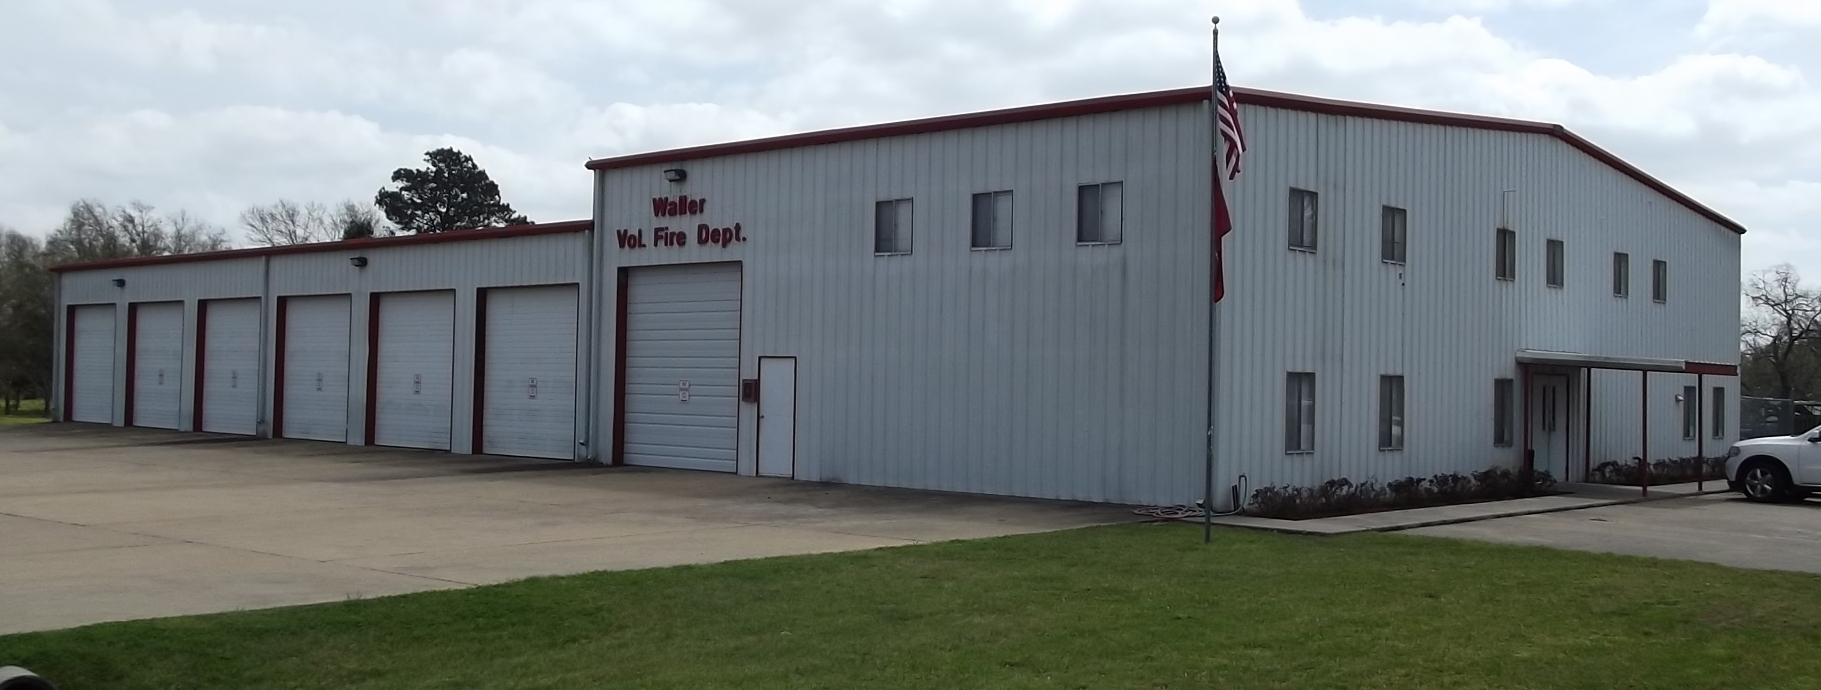 Waller Fire Department